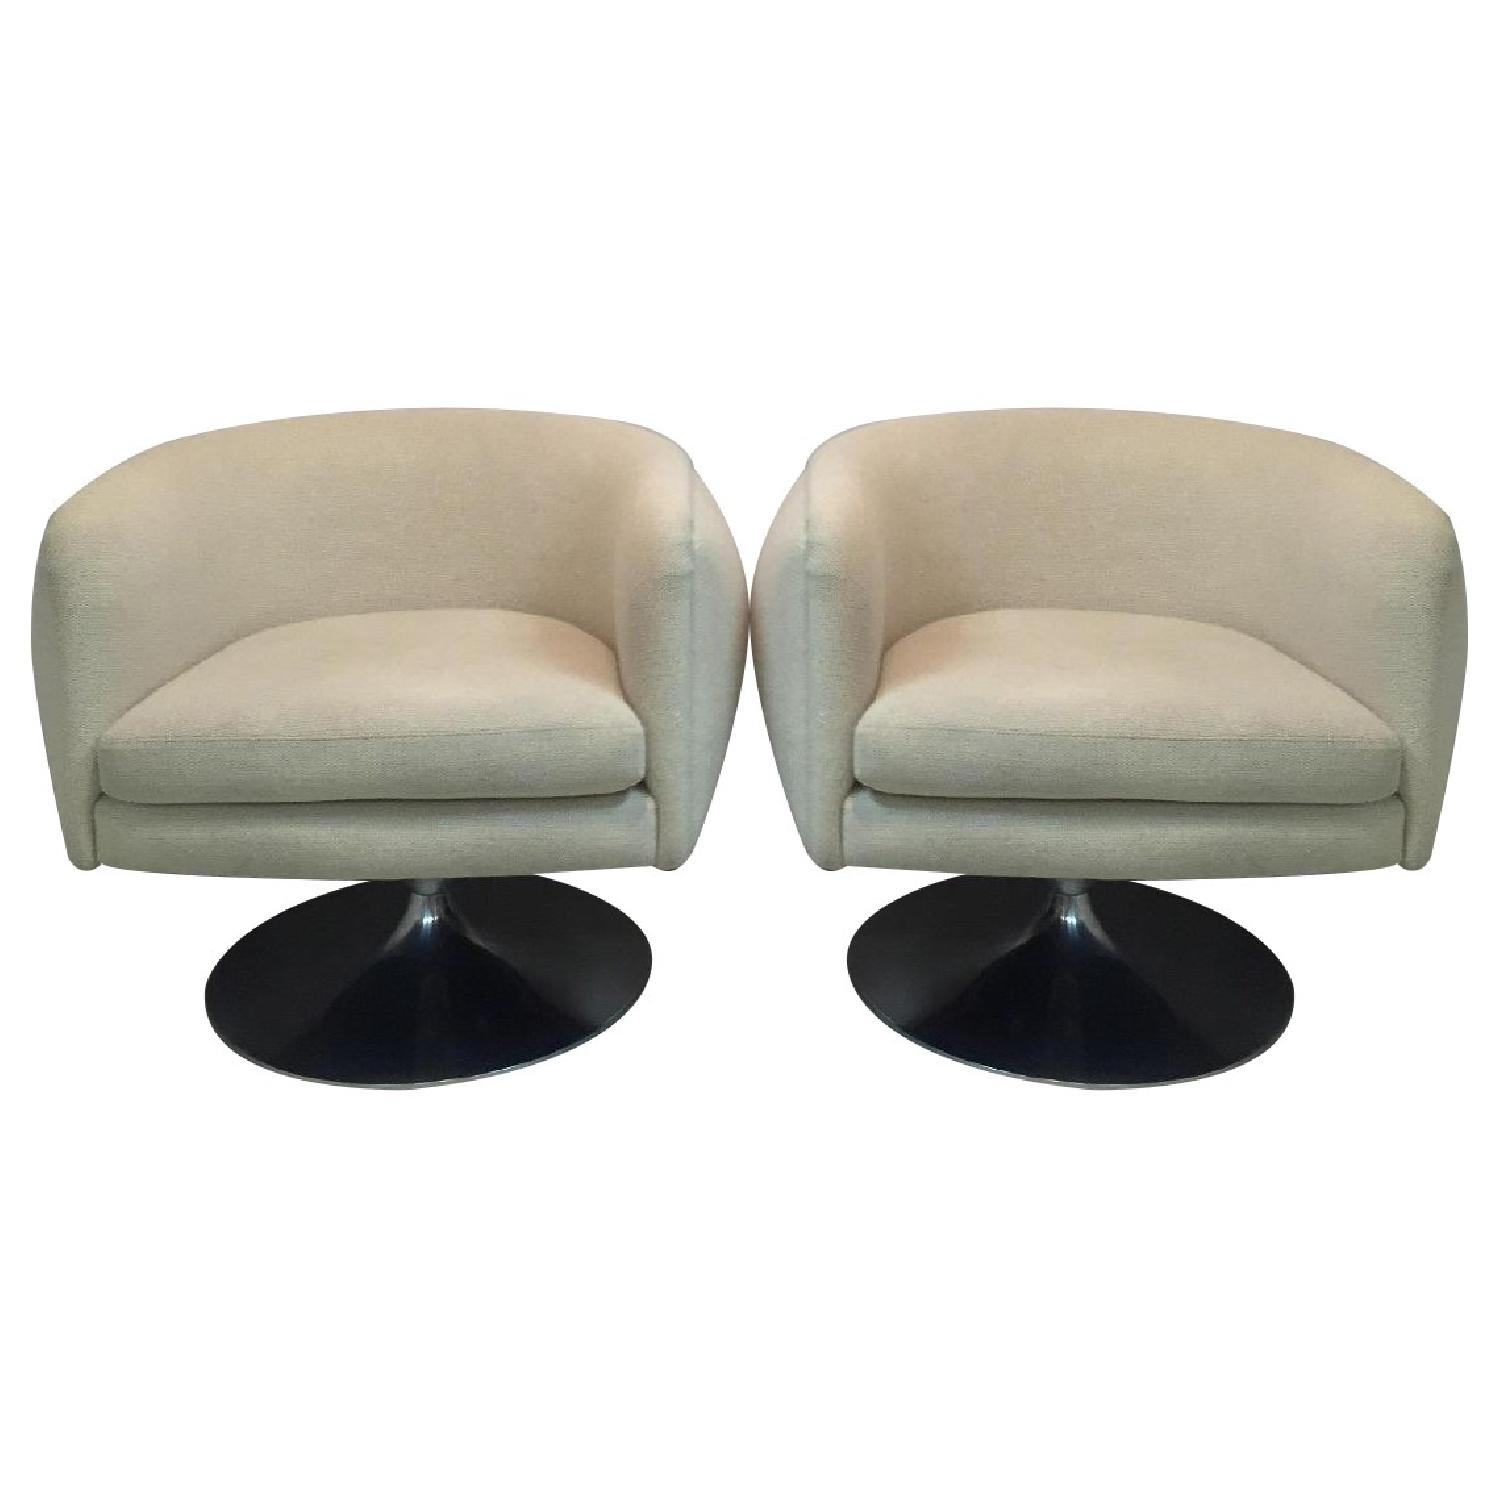 Knoll D'Urso Swivel Lounge Chair - 2 Available - image-0